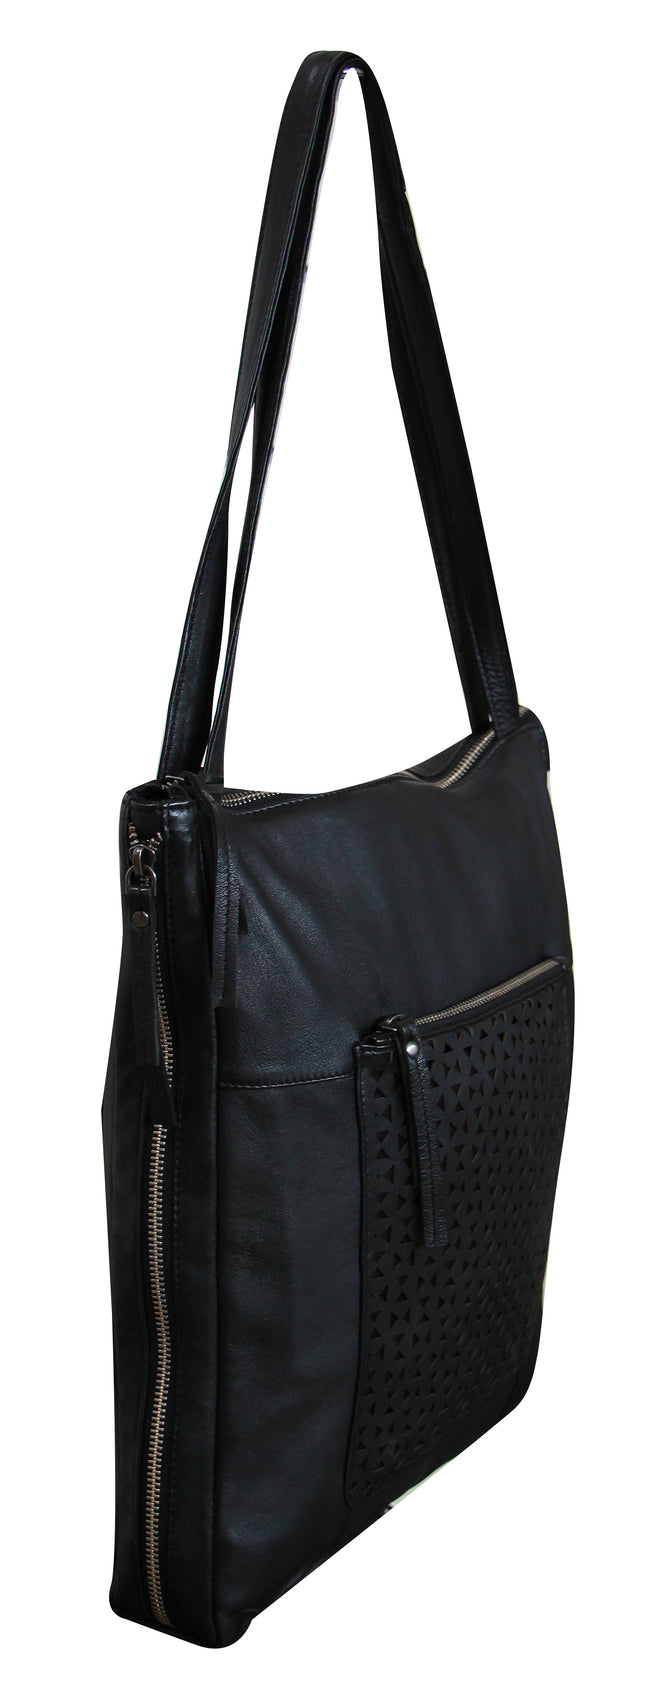 Giannotti Leather Tall Handbag